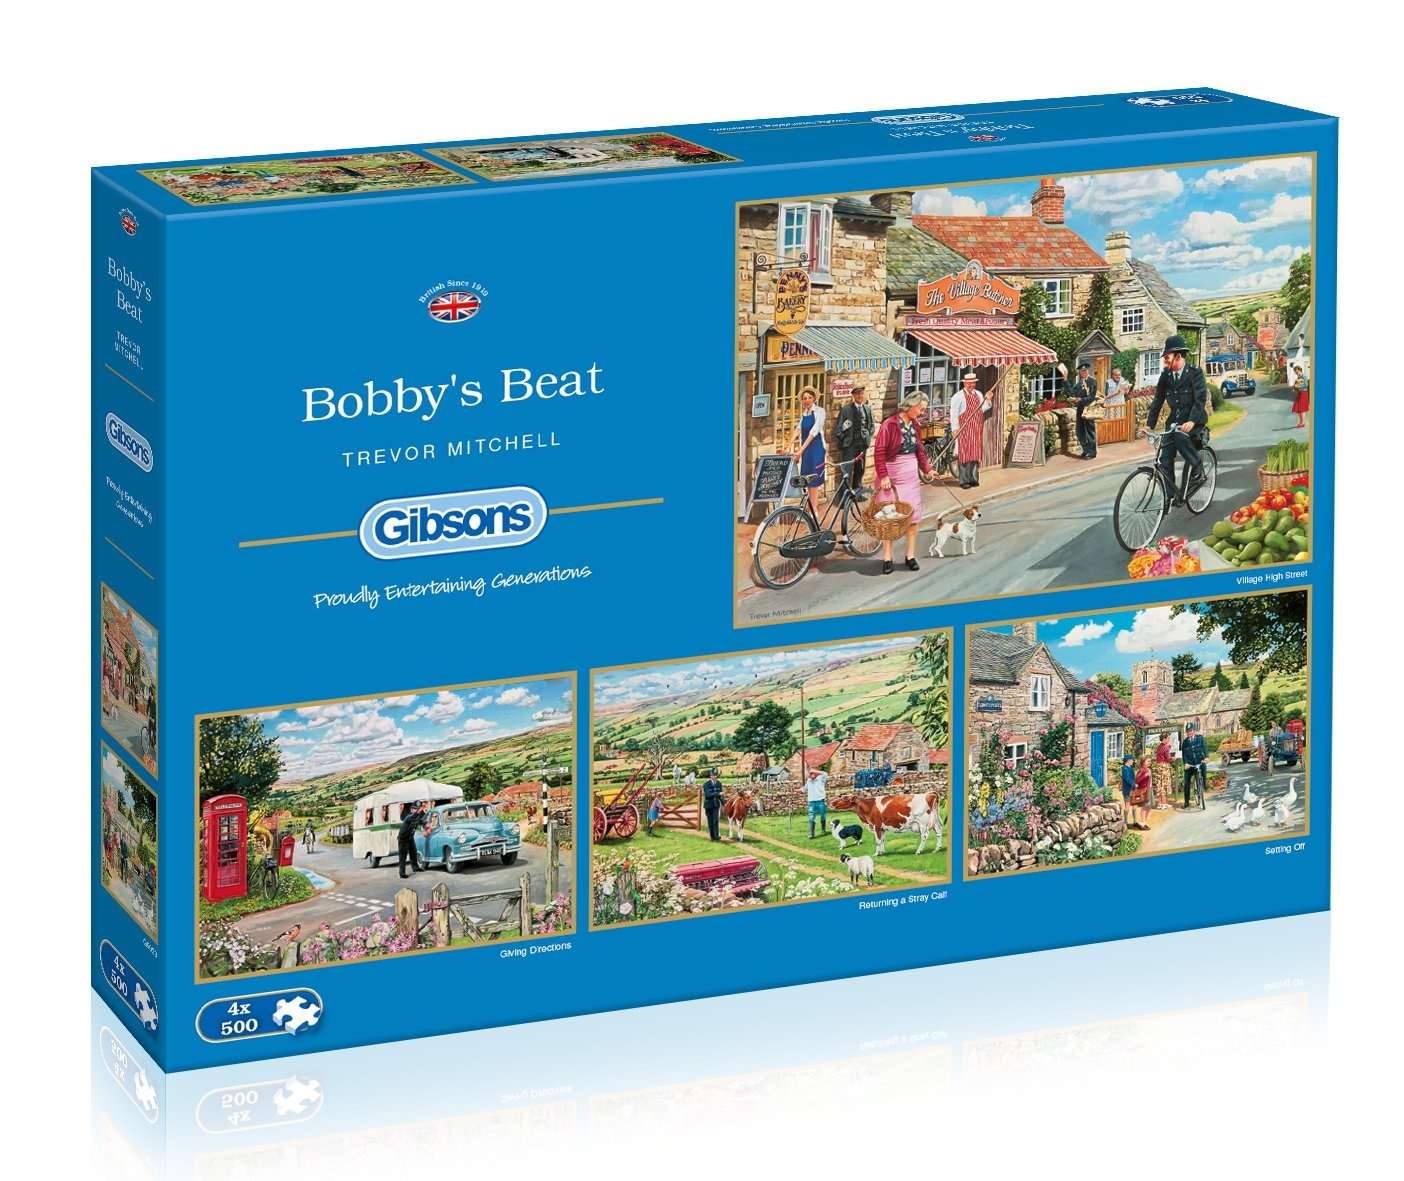 Gibsons Beat Bobby's Beat Jigsaw Puzzles (4 (4 x 500 Pieces) B00PFL773M B00PFL773M, 美StarShop:94b2d34e --- sharoshka.org